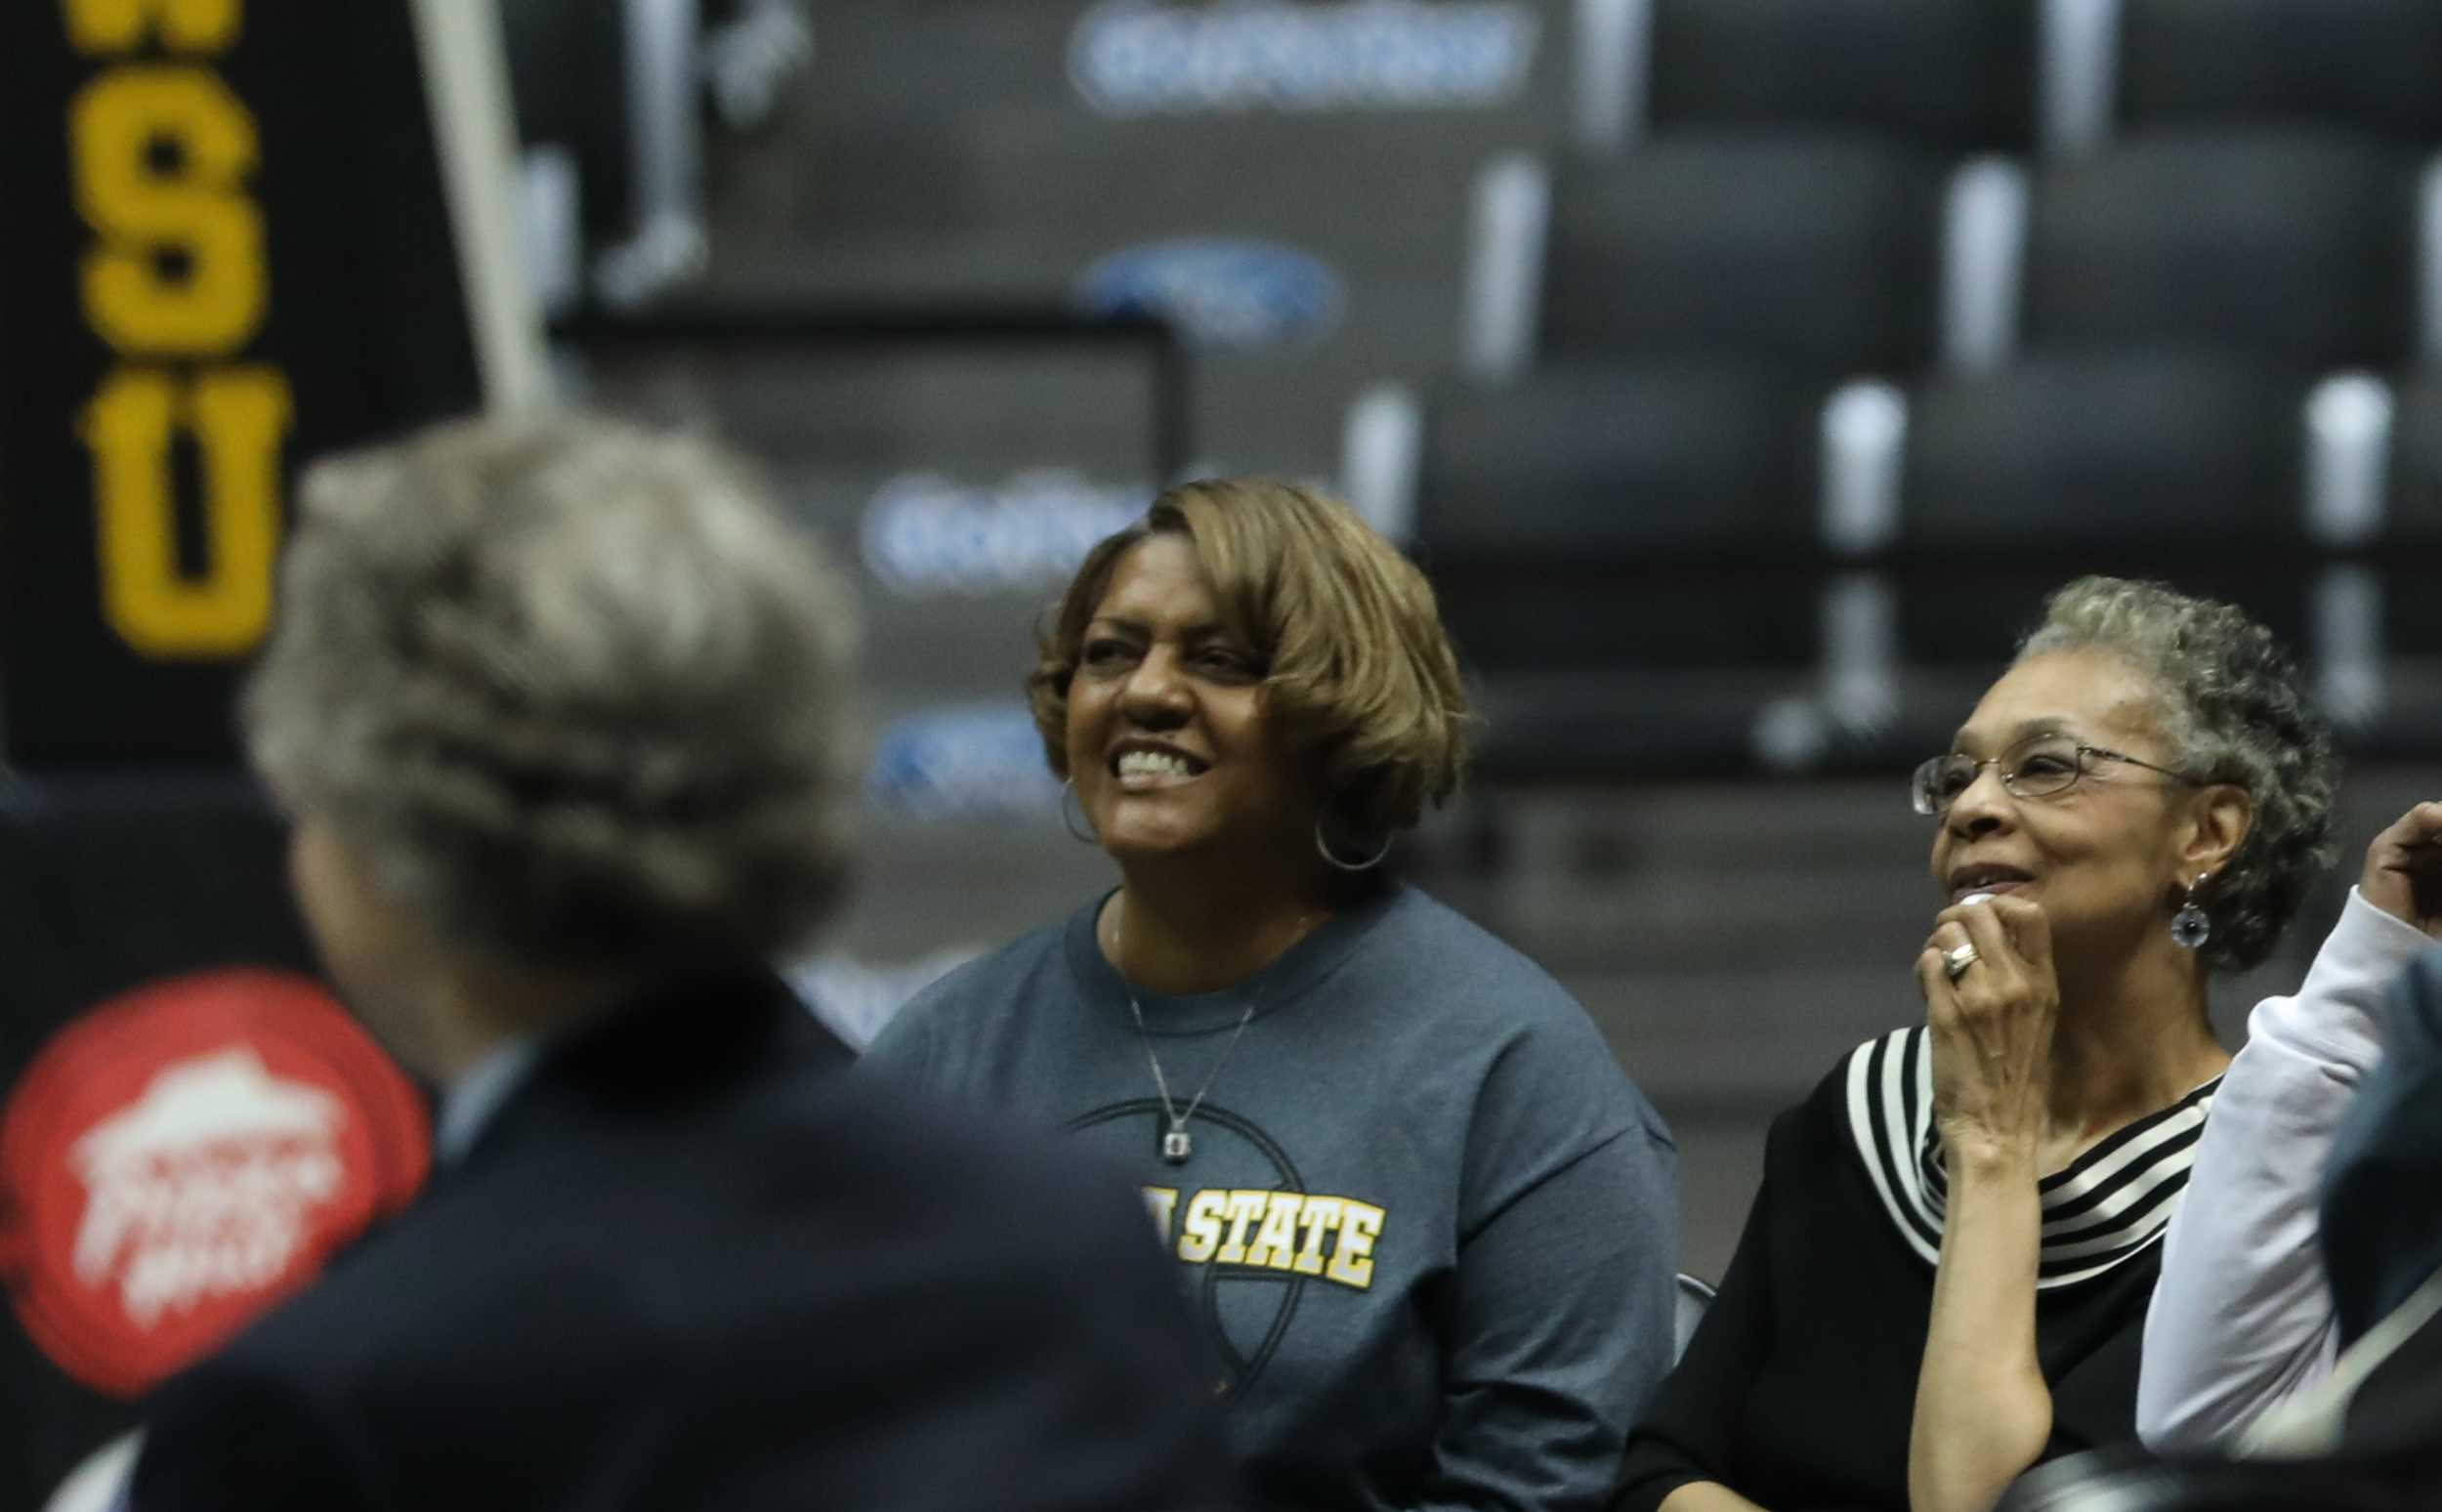 Gloria Stallworth, right, watches as friends and teammates of her late husband share their memories of him during the memorial serve in Koch Arena. (Mar. 24, 2017)